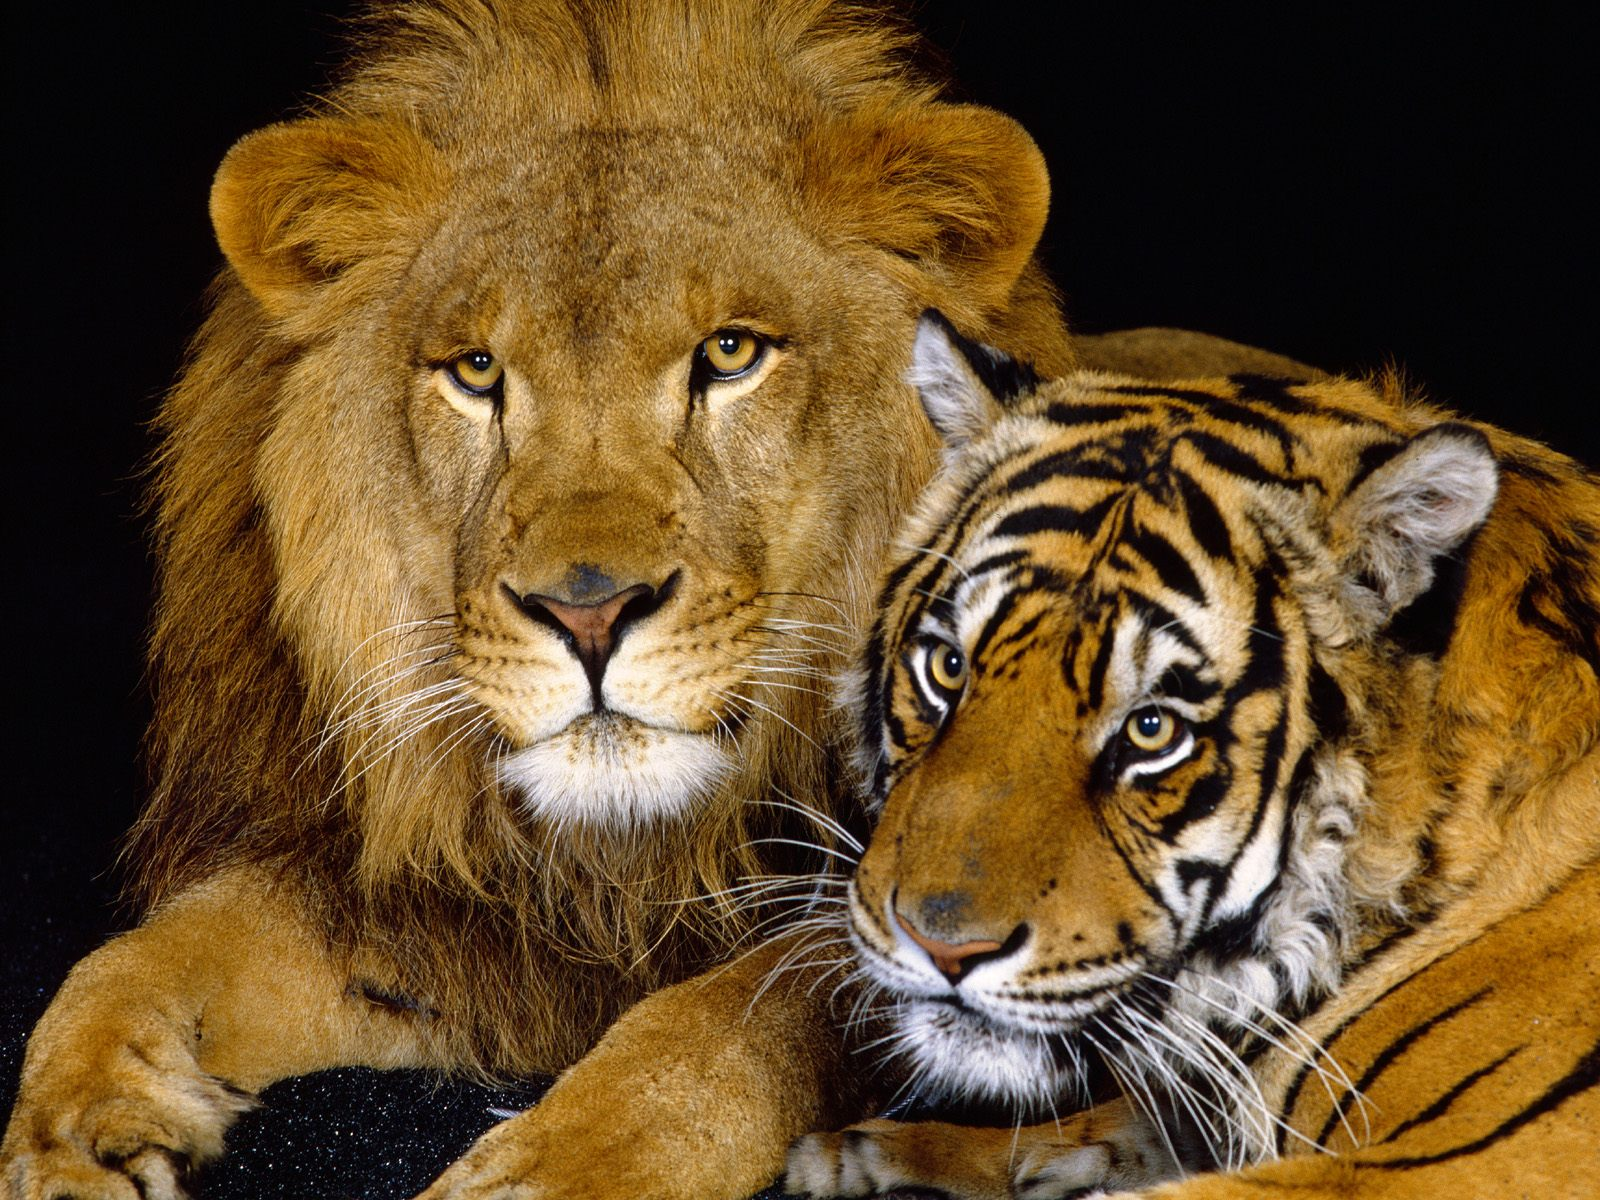 http://4.bp.blogspot.com/-4QrsnUzbFdc/Tp-KpEDXOQI/AAAAAAAABBY/rkHYJN9PDj8/s1600/Siberian+tigers+and+lions+animal+attacks+in+Ohio+USA+owner+dies+of+exotic+animals+escape+ANIMAL+PICTURES.jpg